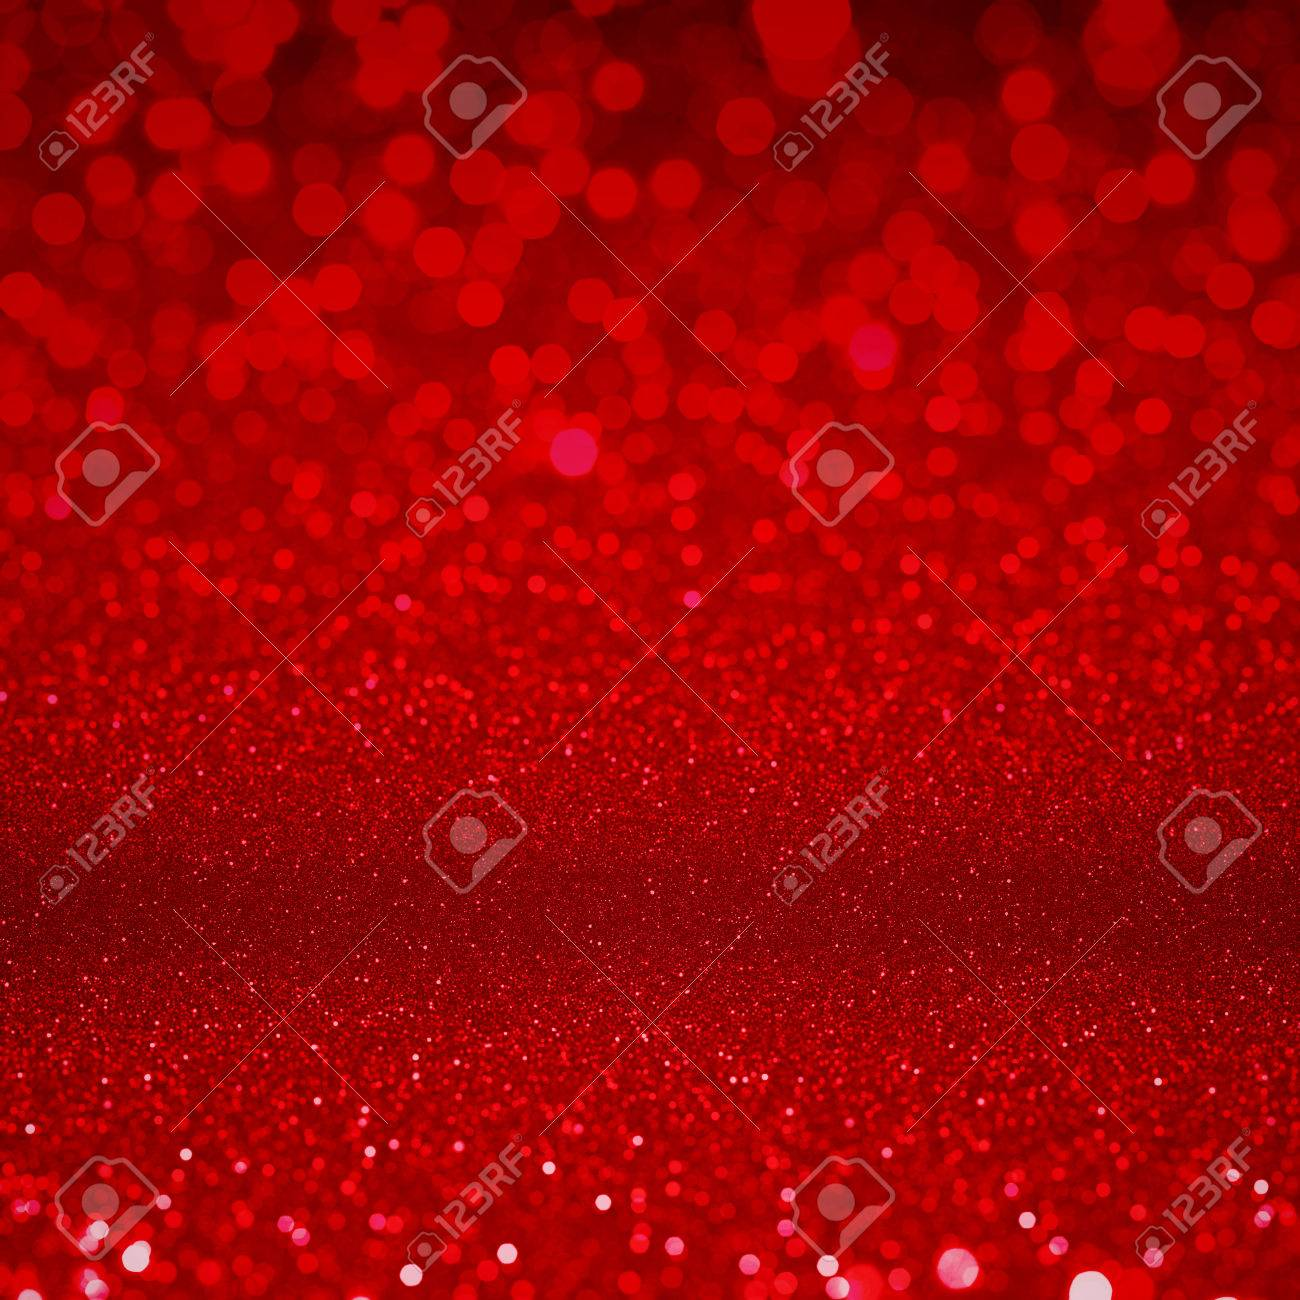 Red Glitter Sparkles Textured Christmas Sequins Background Fashion Glamour Ruby Glittering Wallpaper Stock Photo